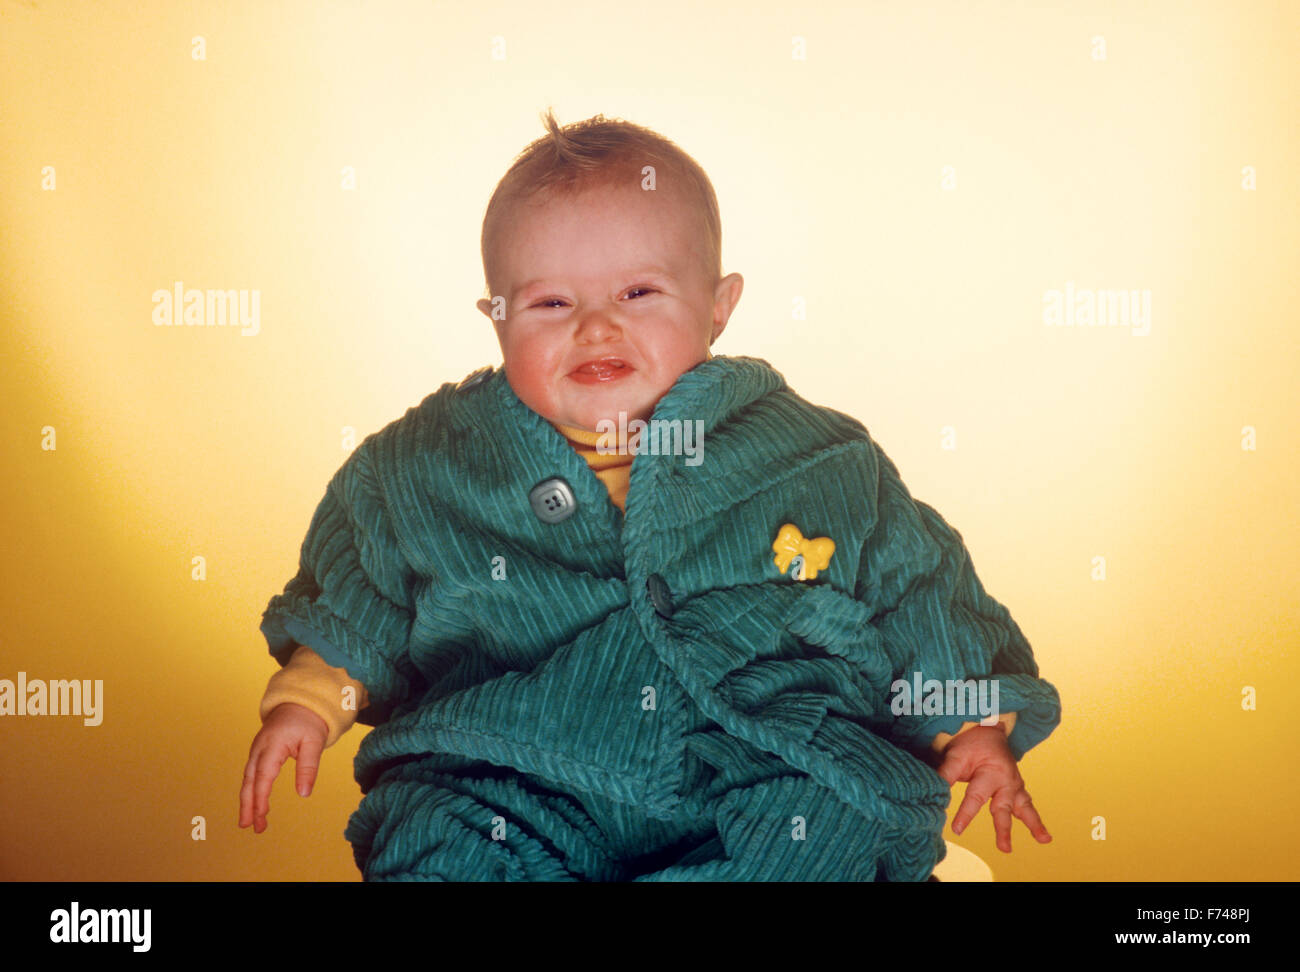 portrait of happy chubby baby - Stock Image